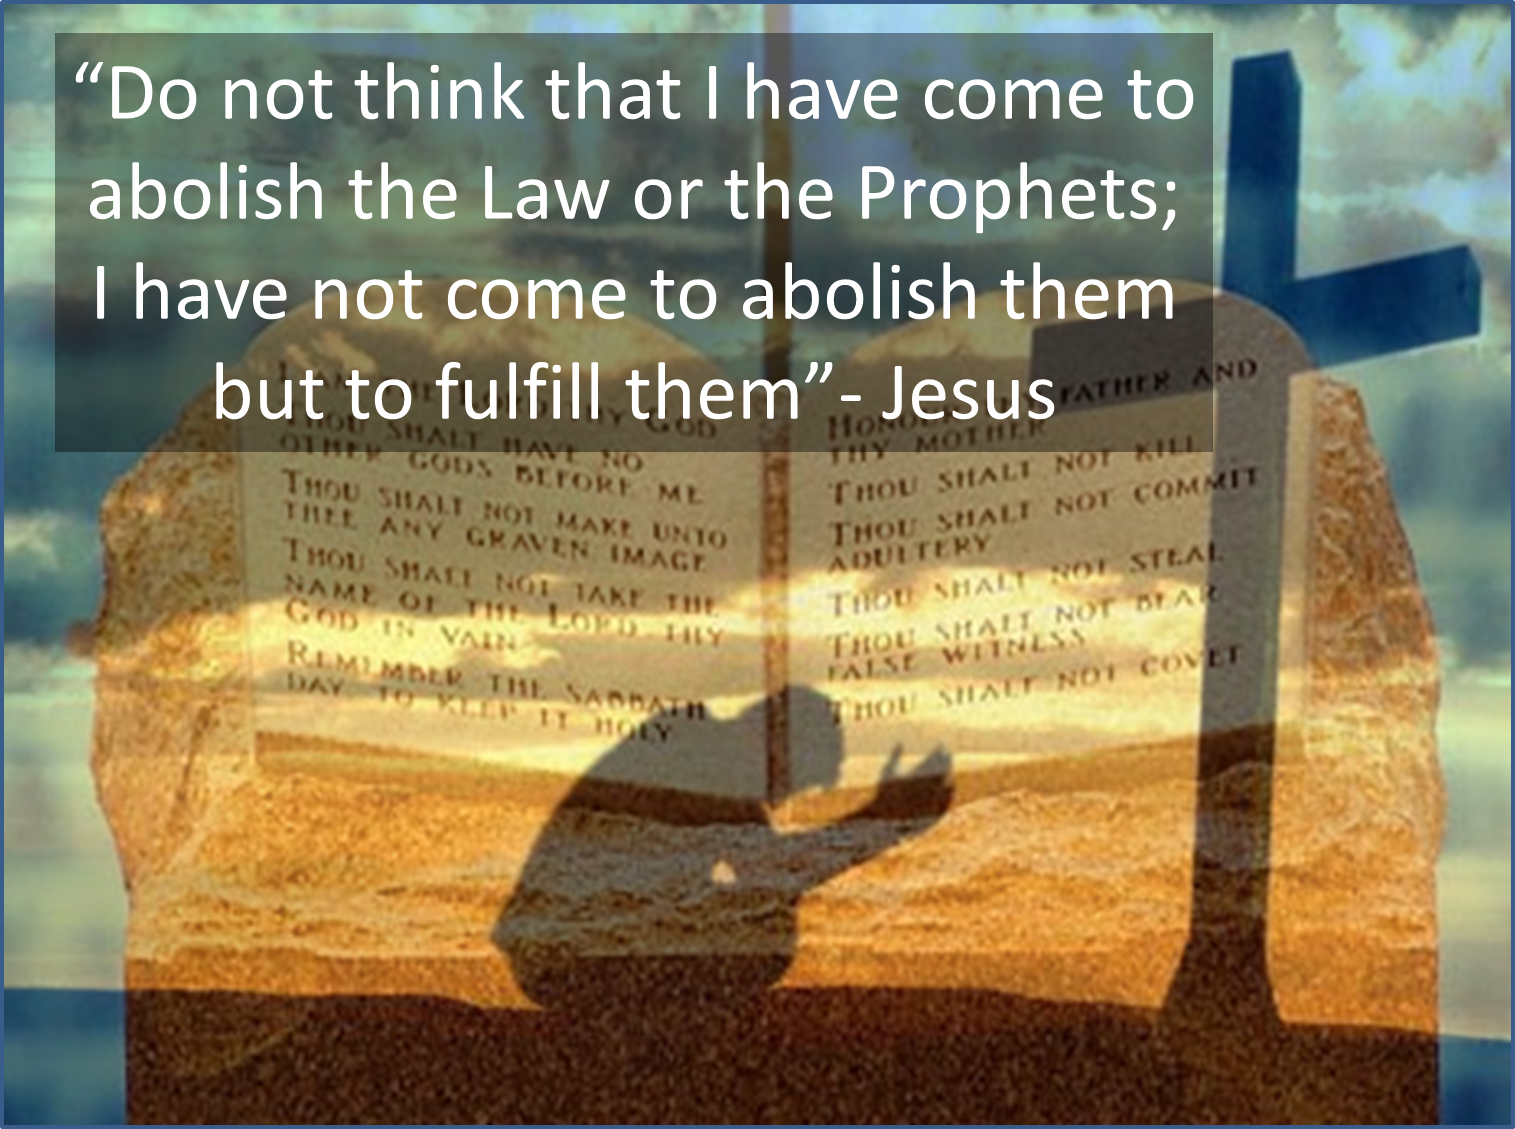 jesus and law 1 how did jesus christ fulfill the law and the prophets as mediator of the new covenant, jesus emphasized the spiritual intent and purpose of the law and the prophets.